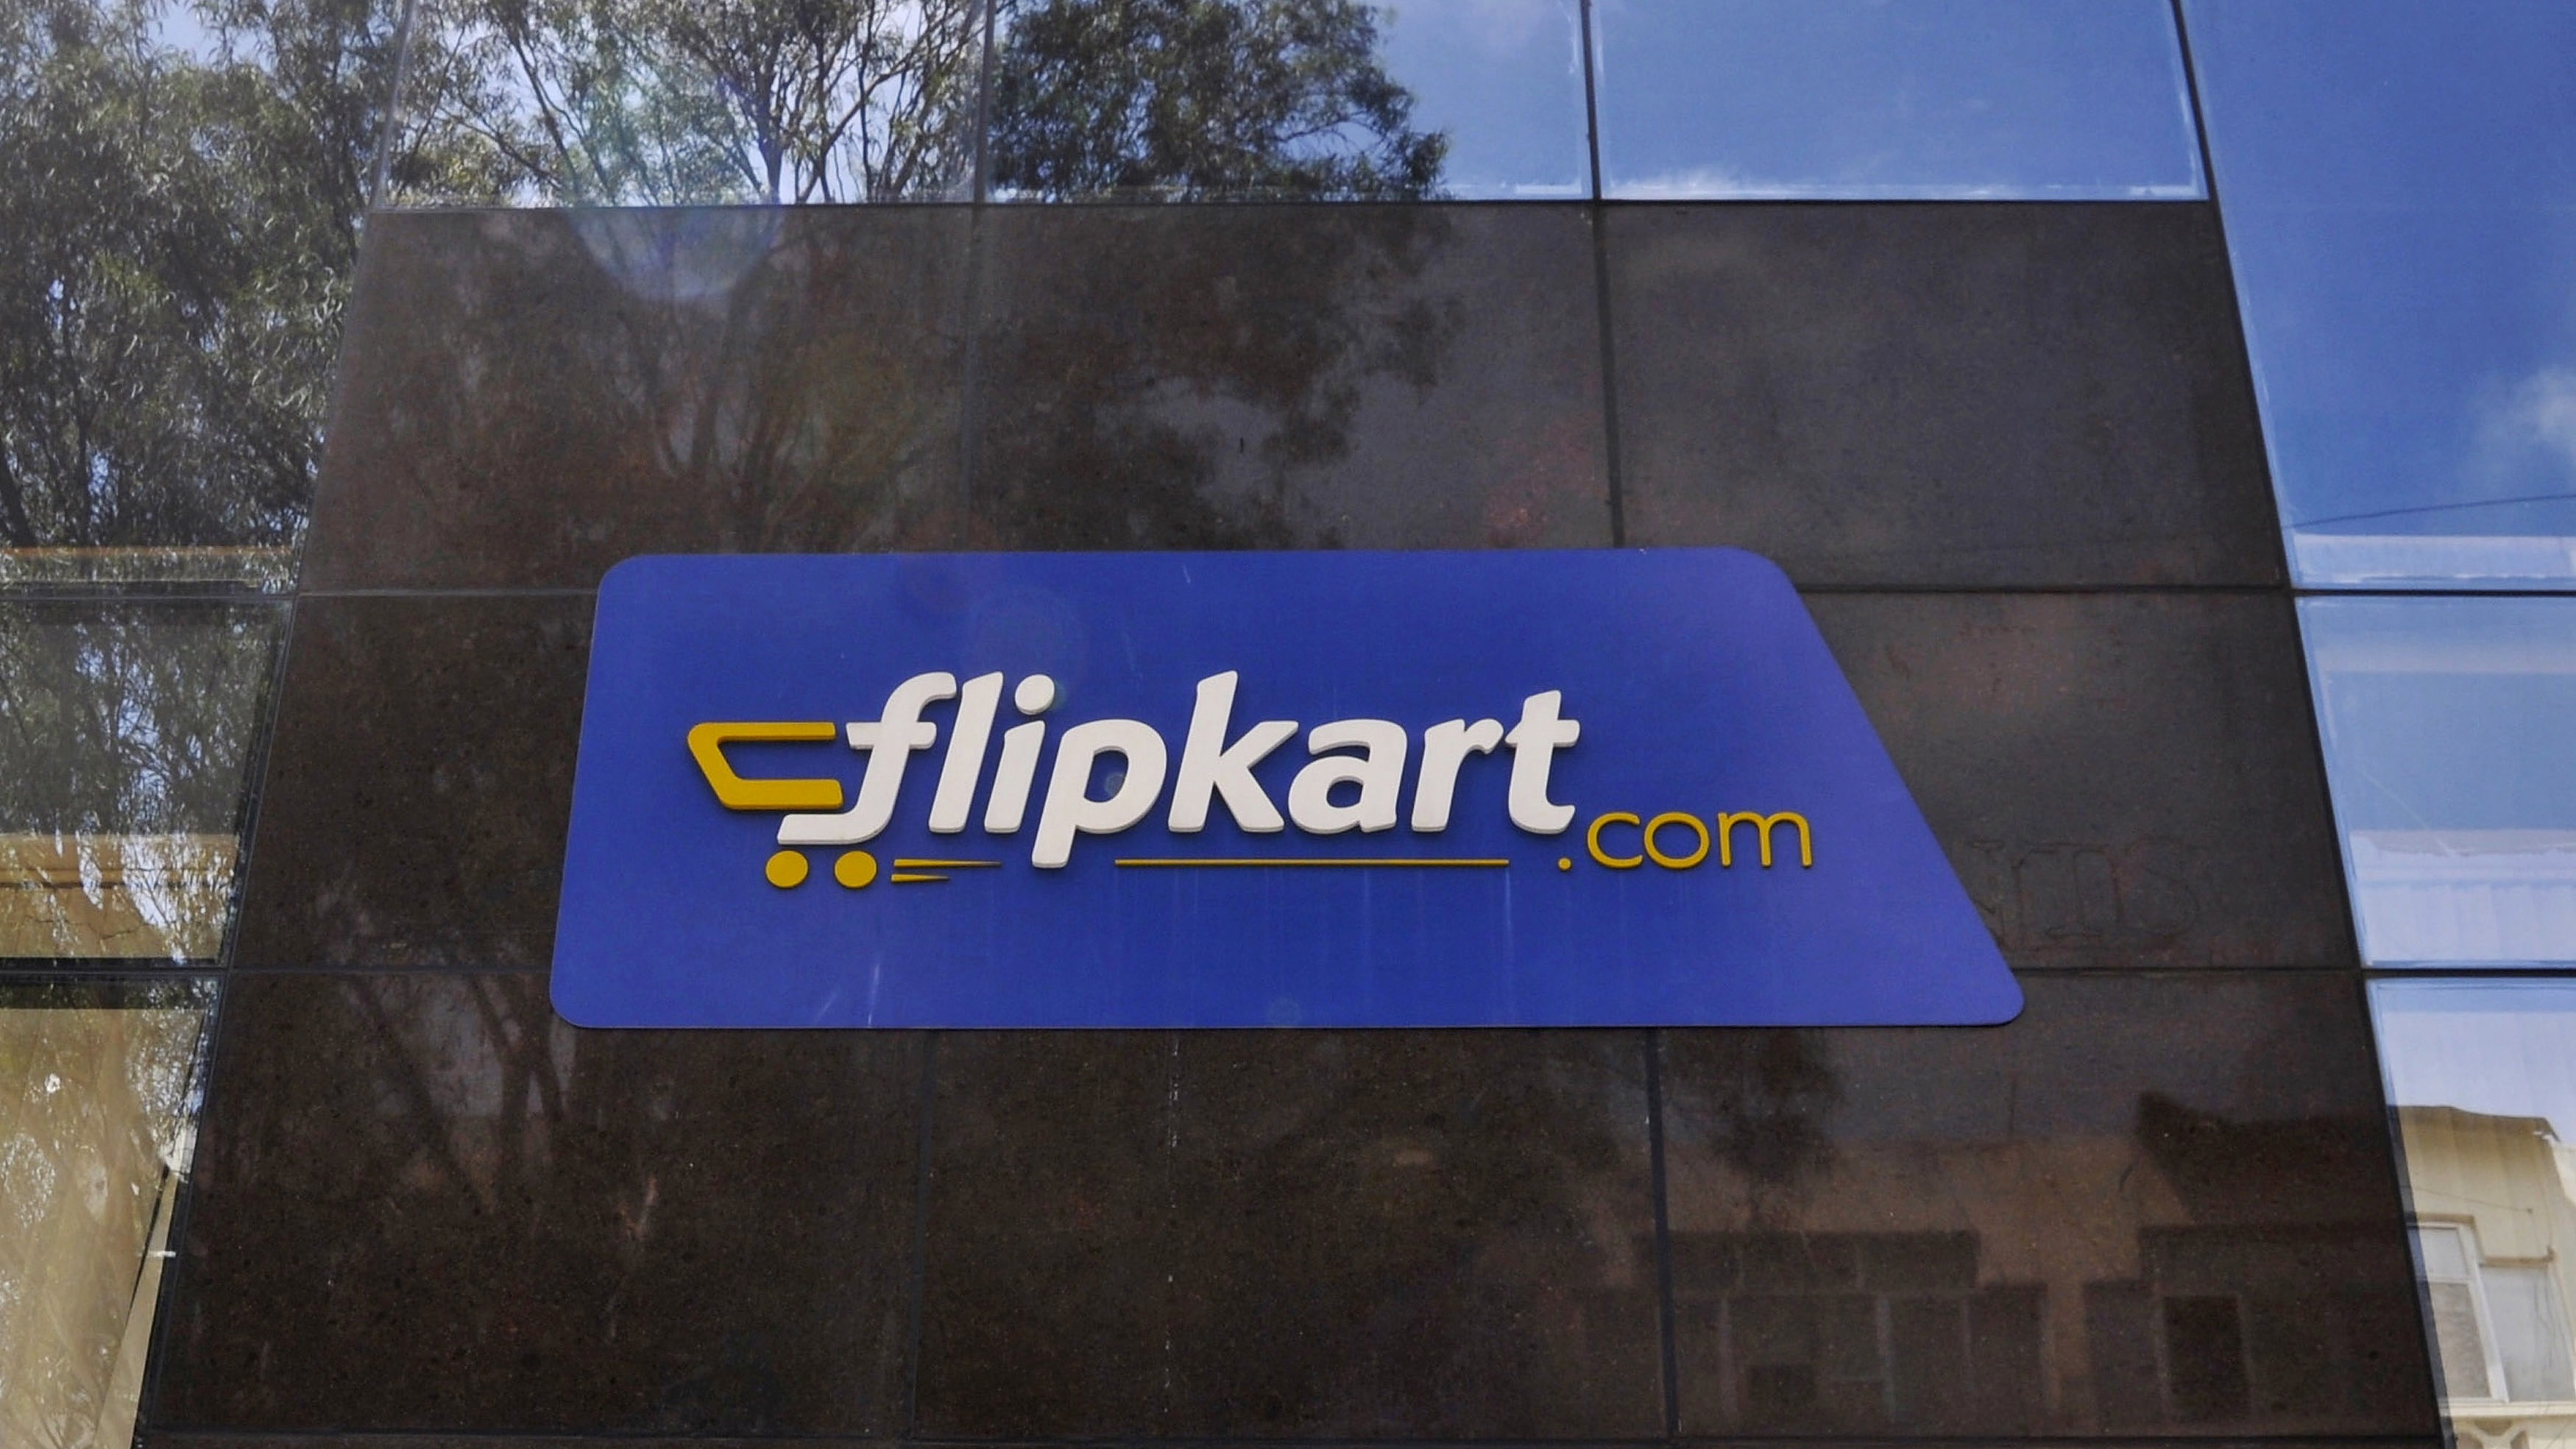 The logo of India's largest online marketplace Flipkart is seen on a building in Bengaluru